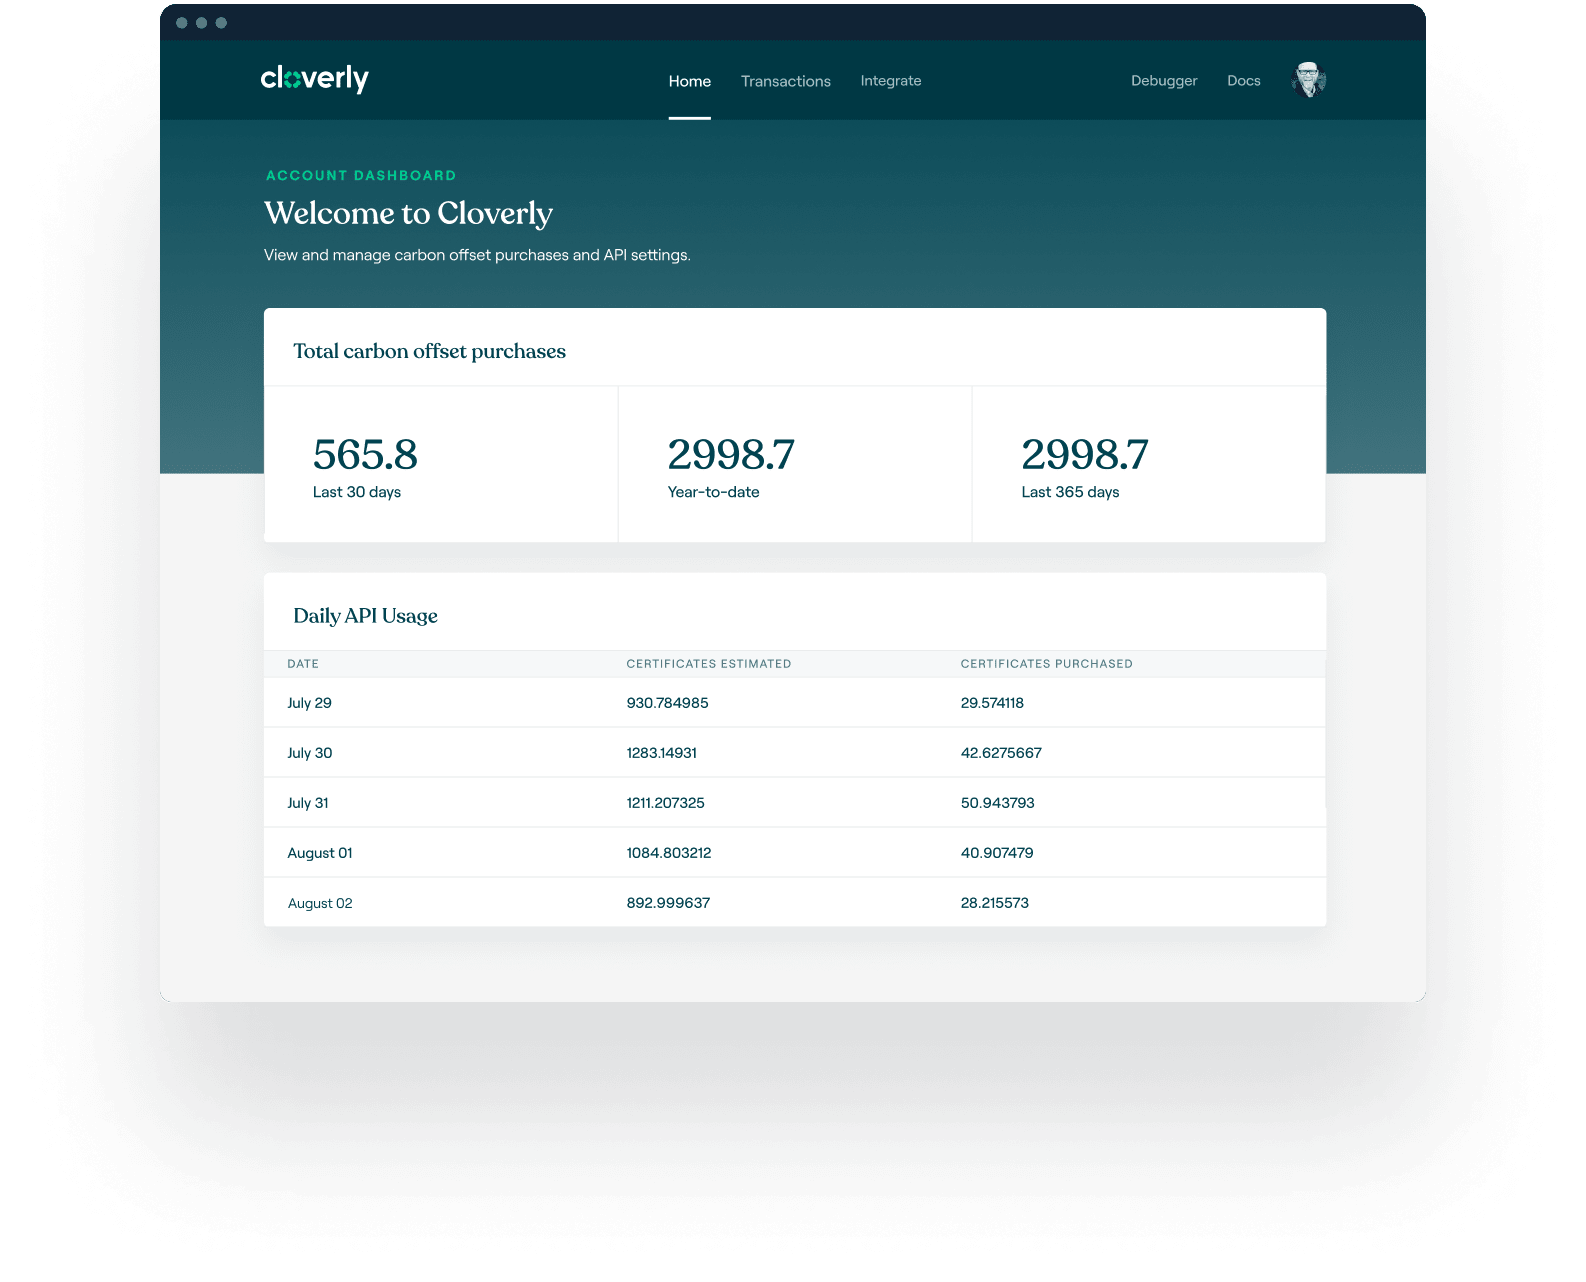 The Cloverly dashboard with statistics on real-time carbon offset purchases.